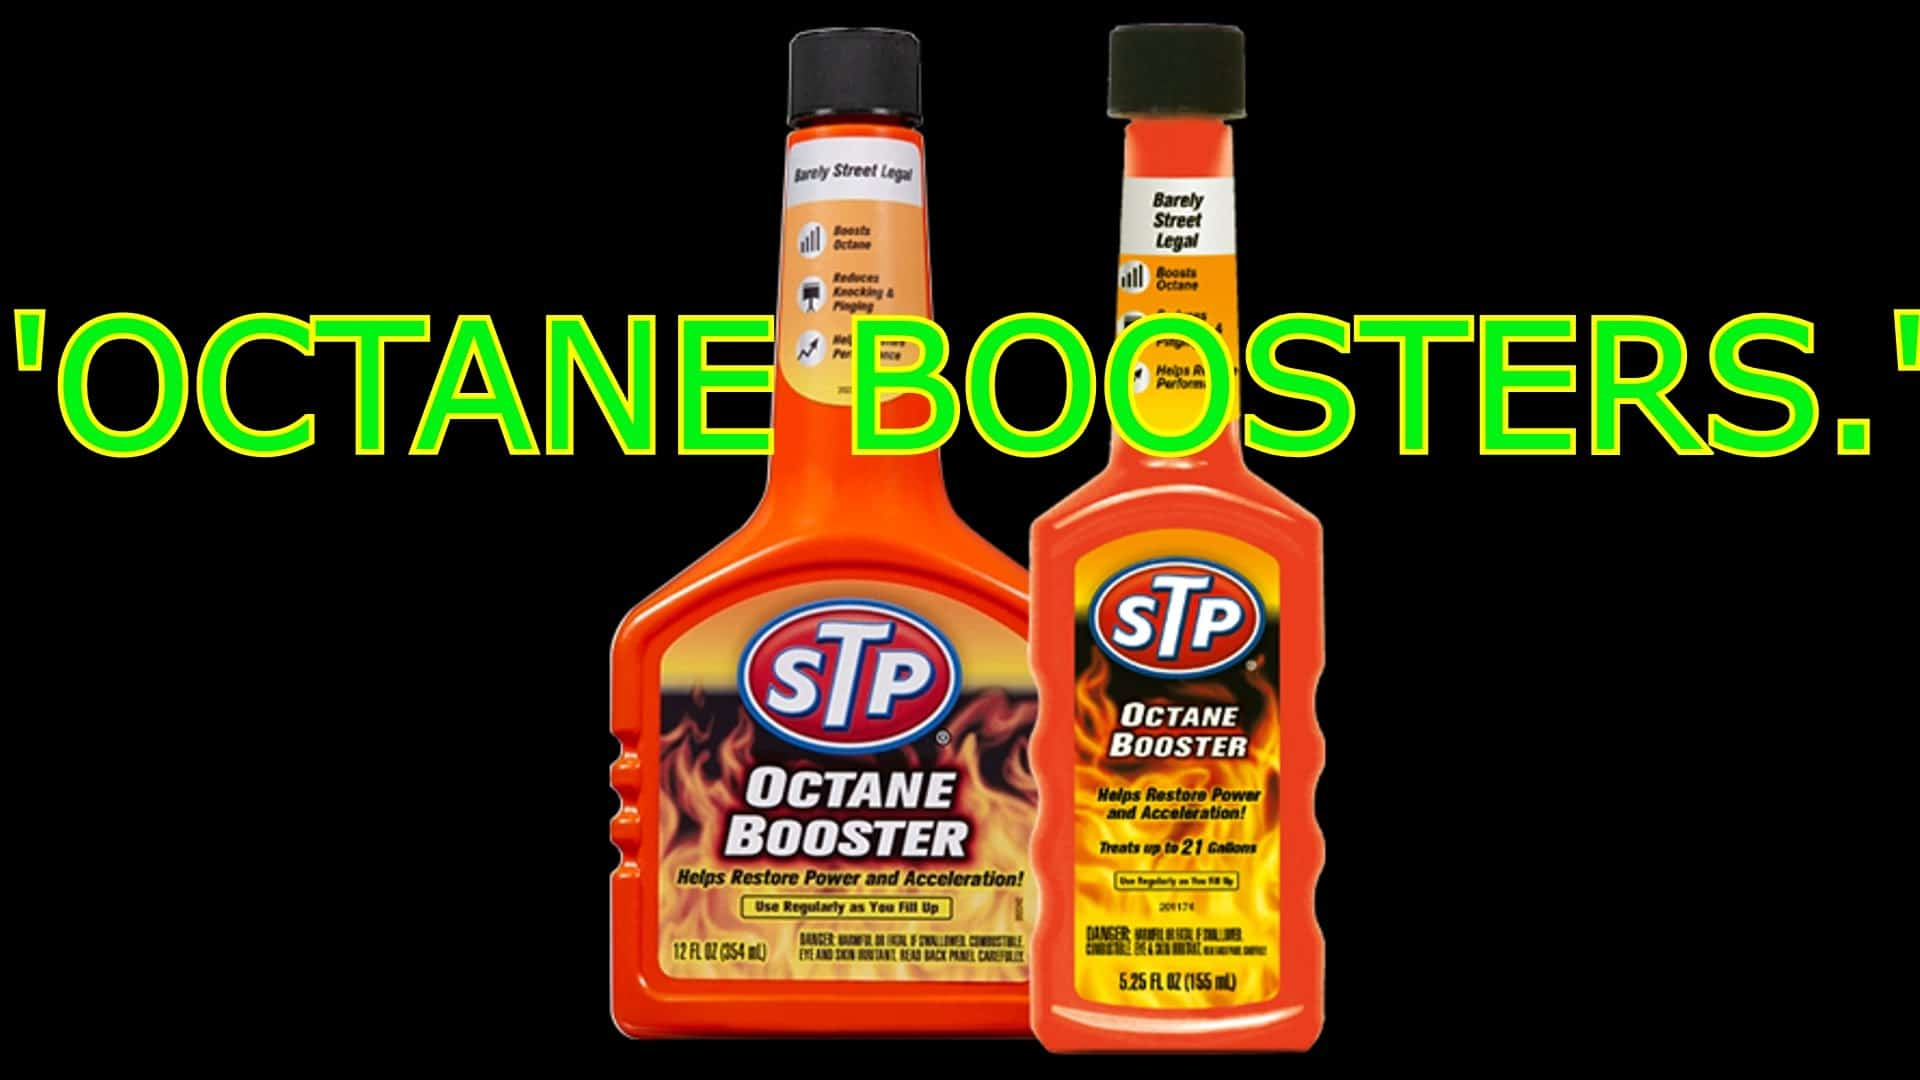 Octane Boost Work in Your Car